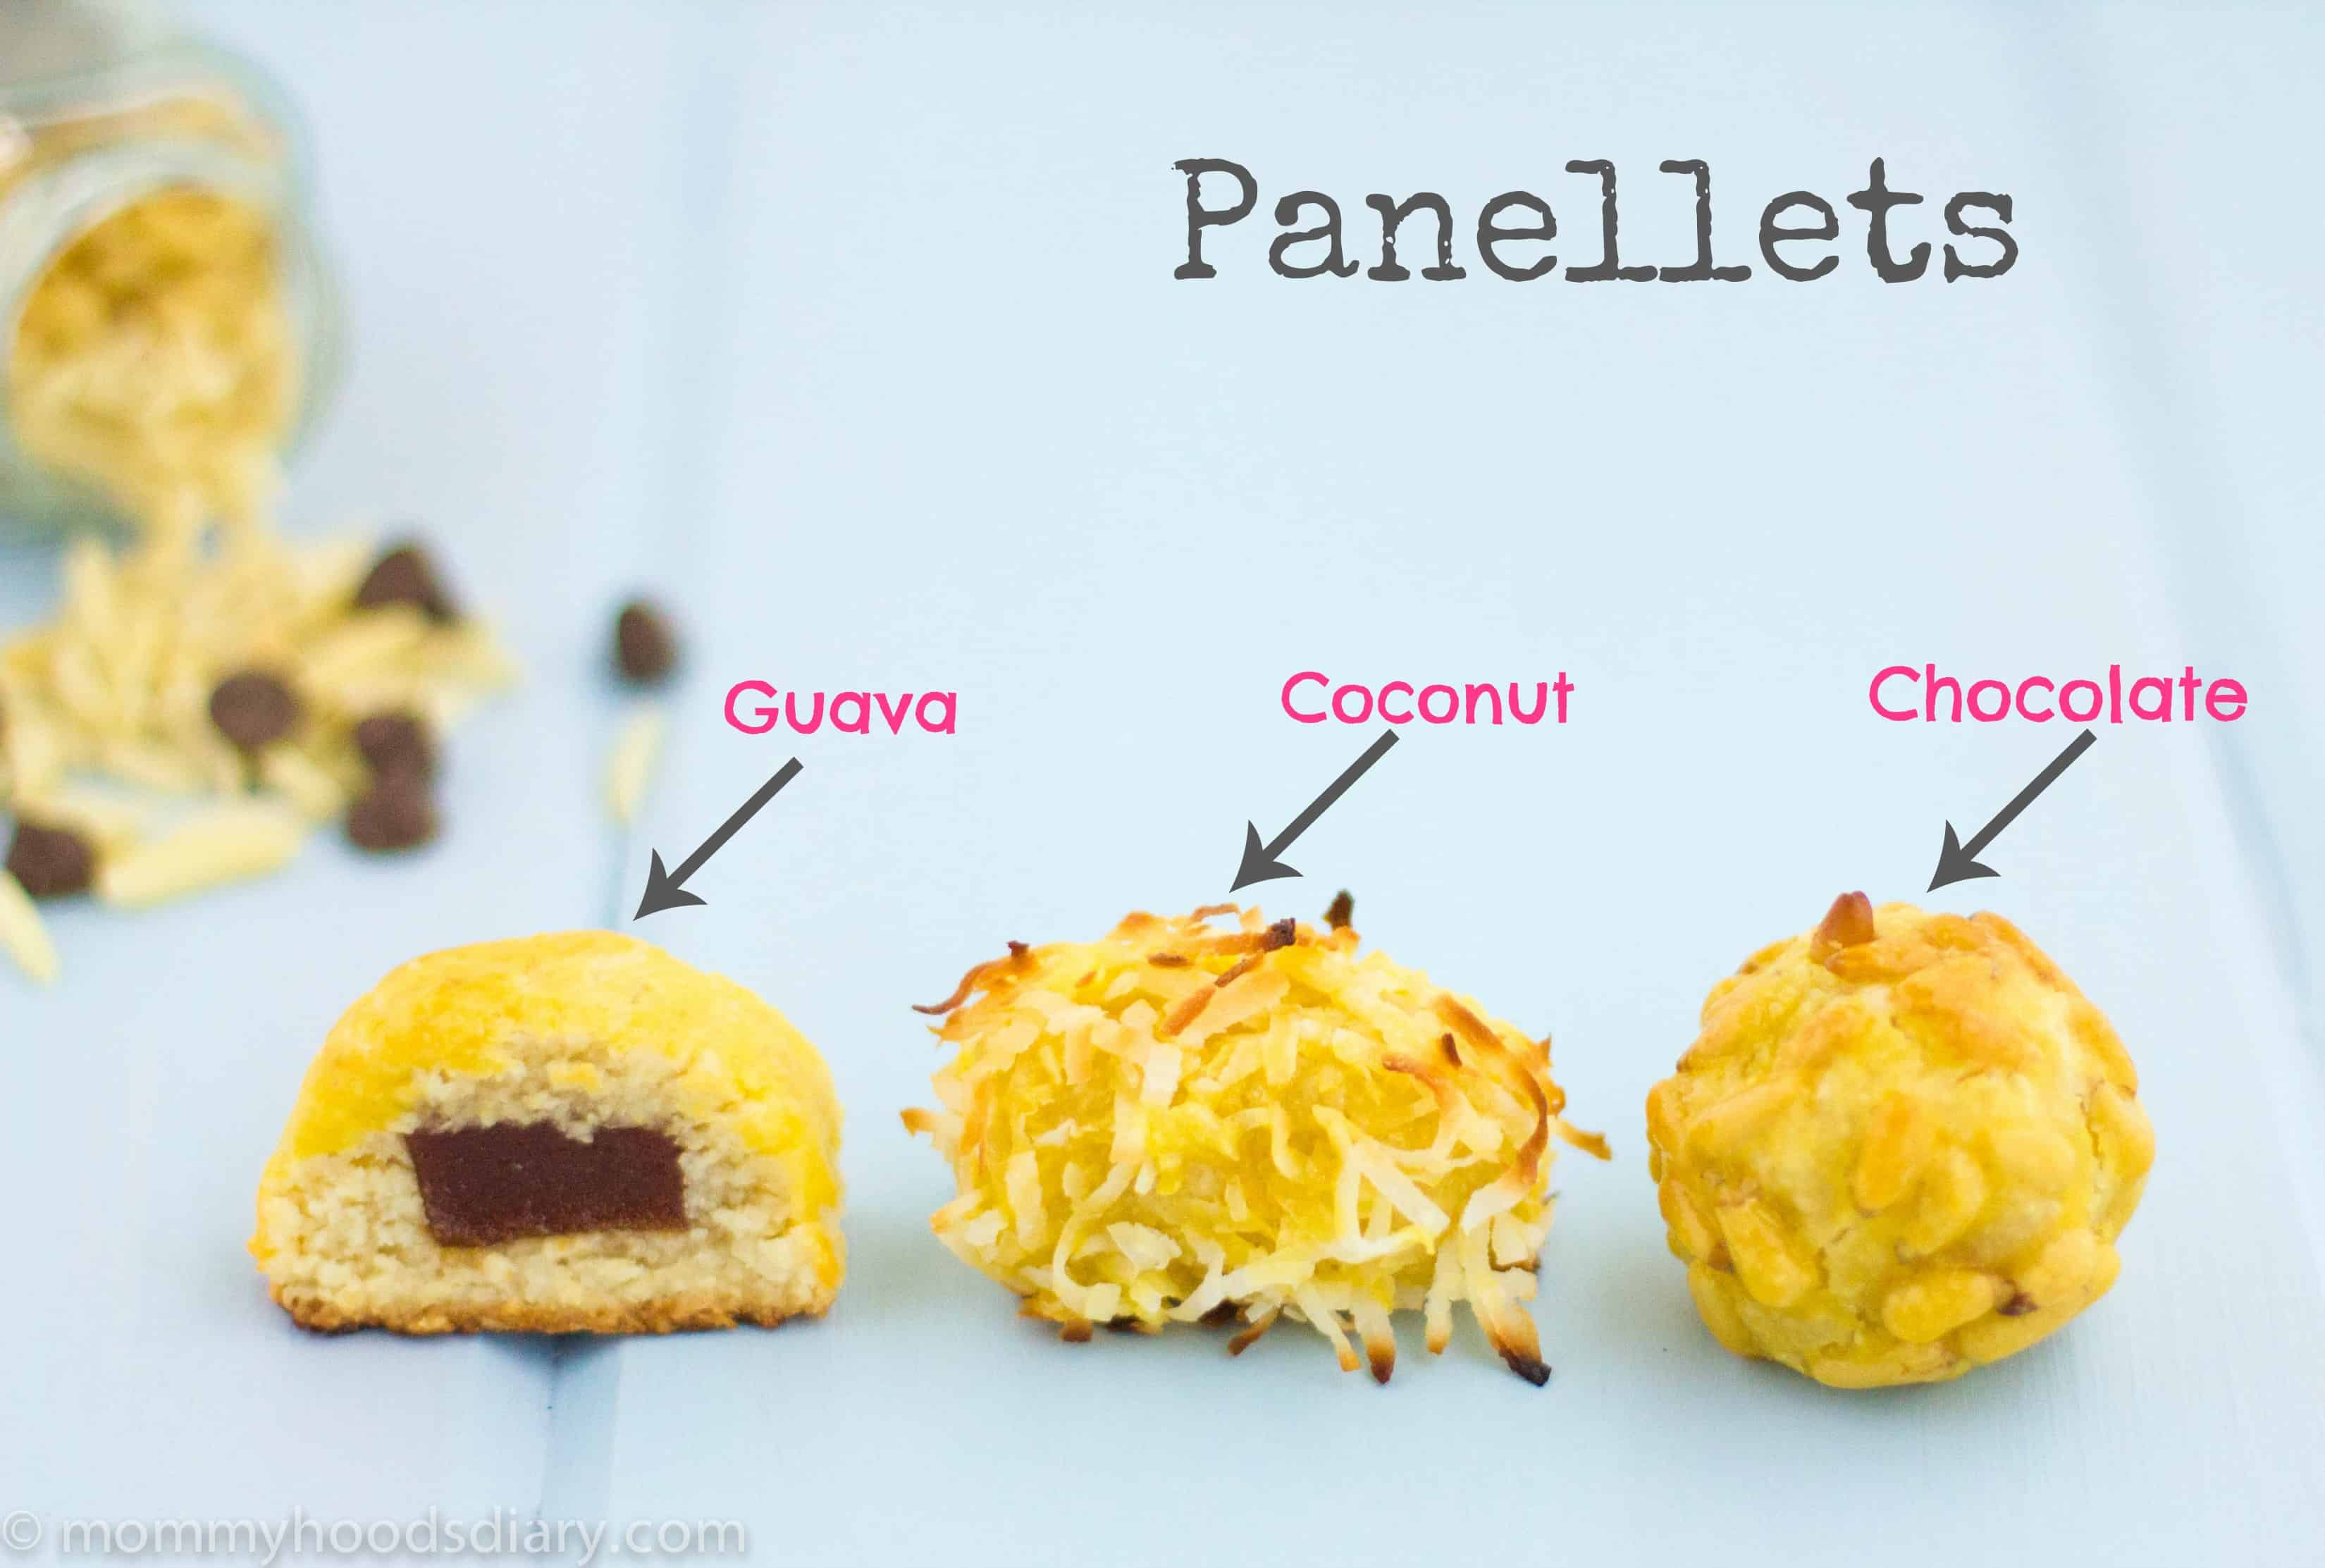 Panellets filling information